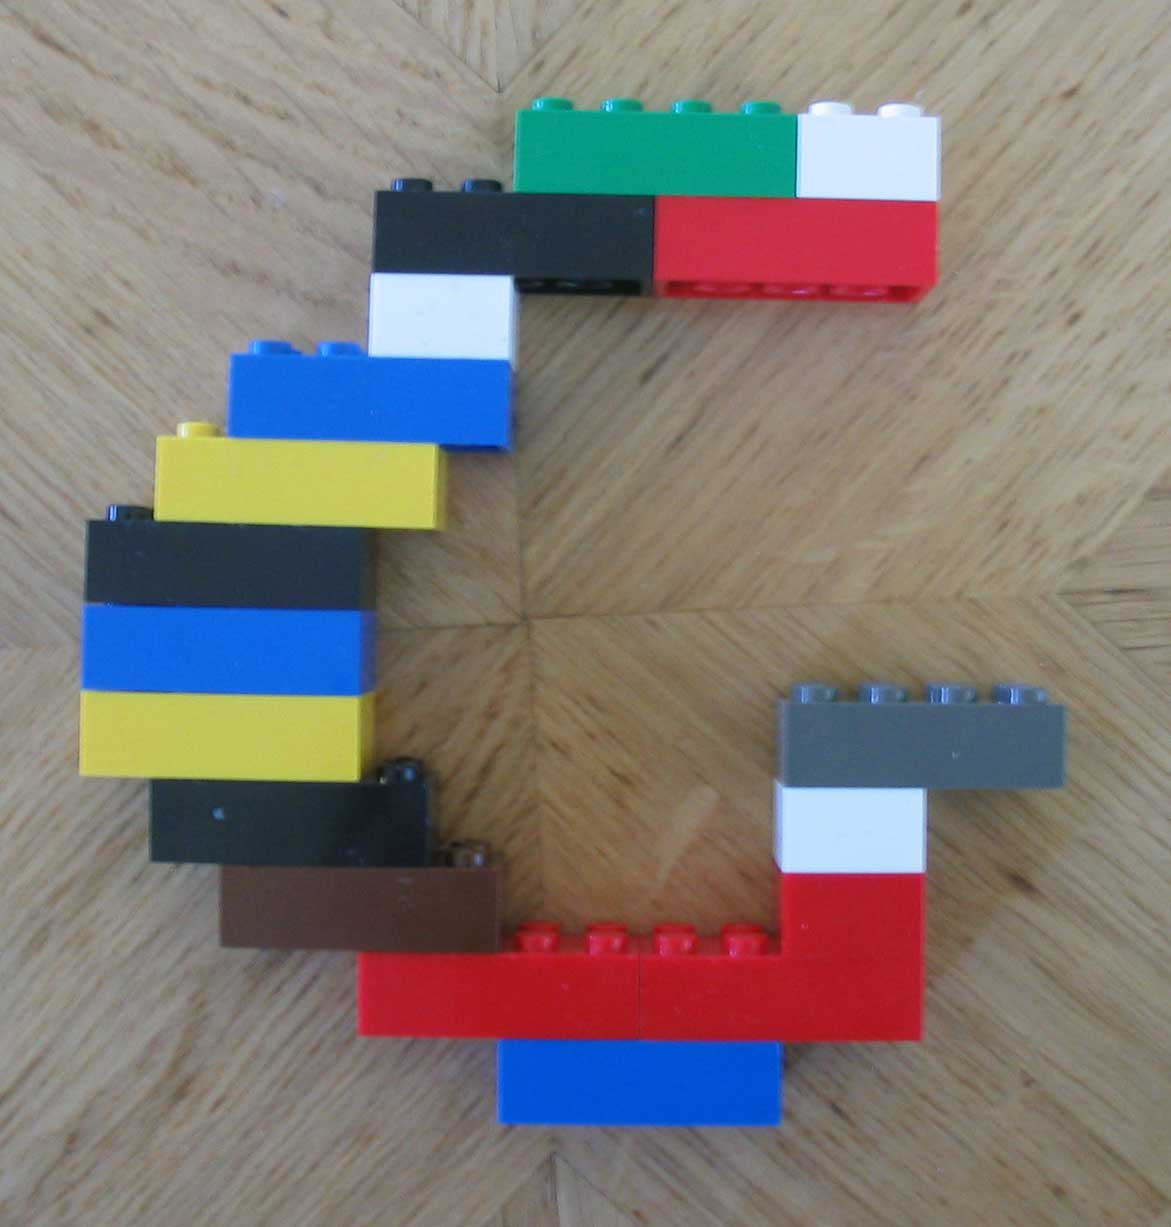 Lego Letters To Print Construct letters with lego